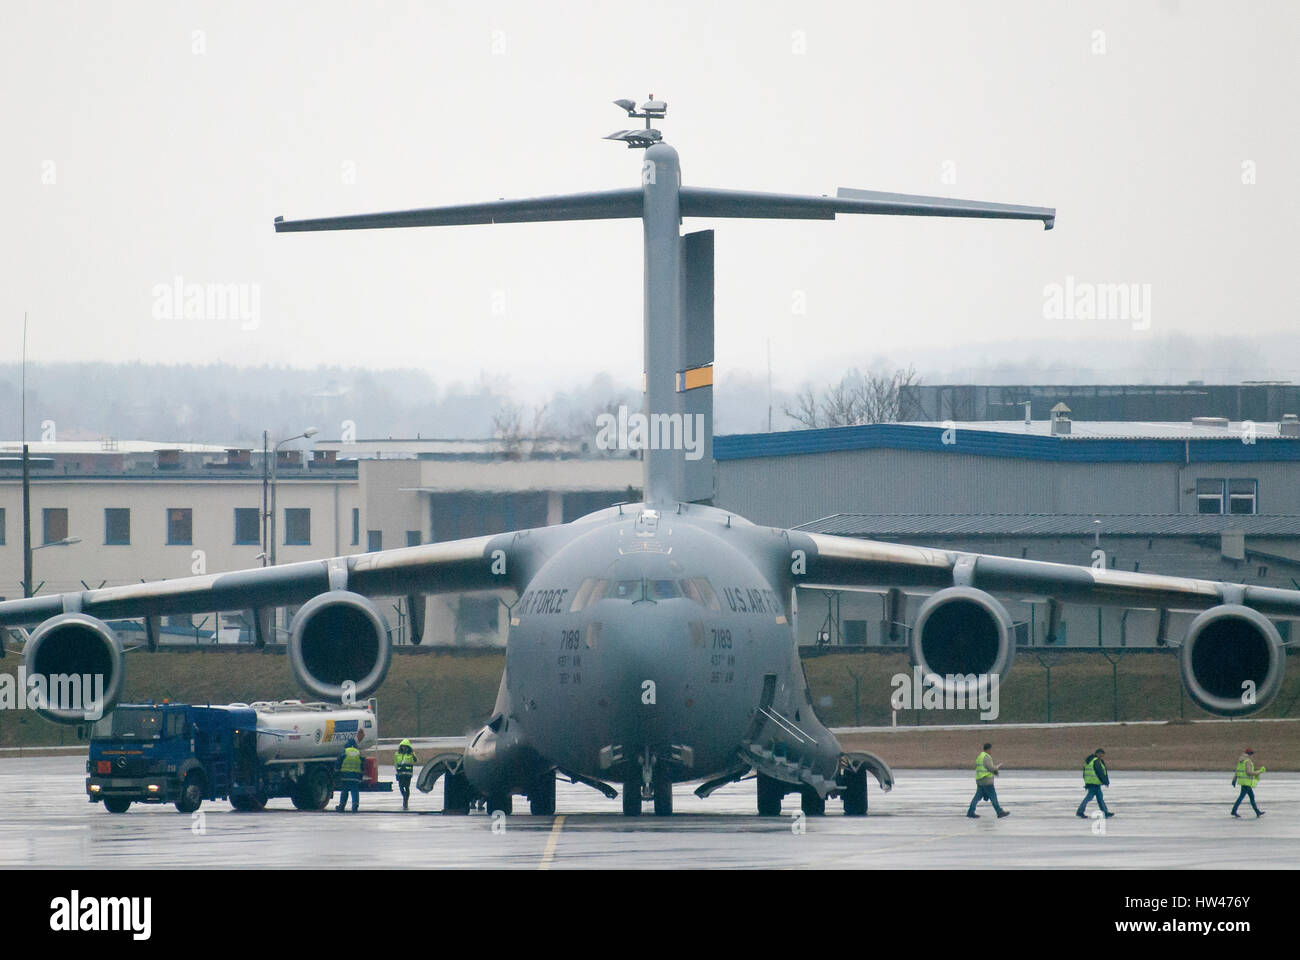 Gdansk, Poland. 17th Mar, 2017. United States Air Force large military transport aircraft Boeing C-17A Globemaster - Stock Image